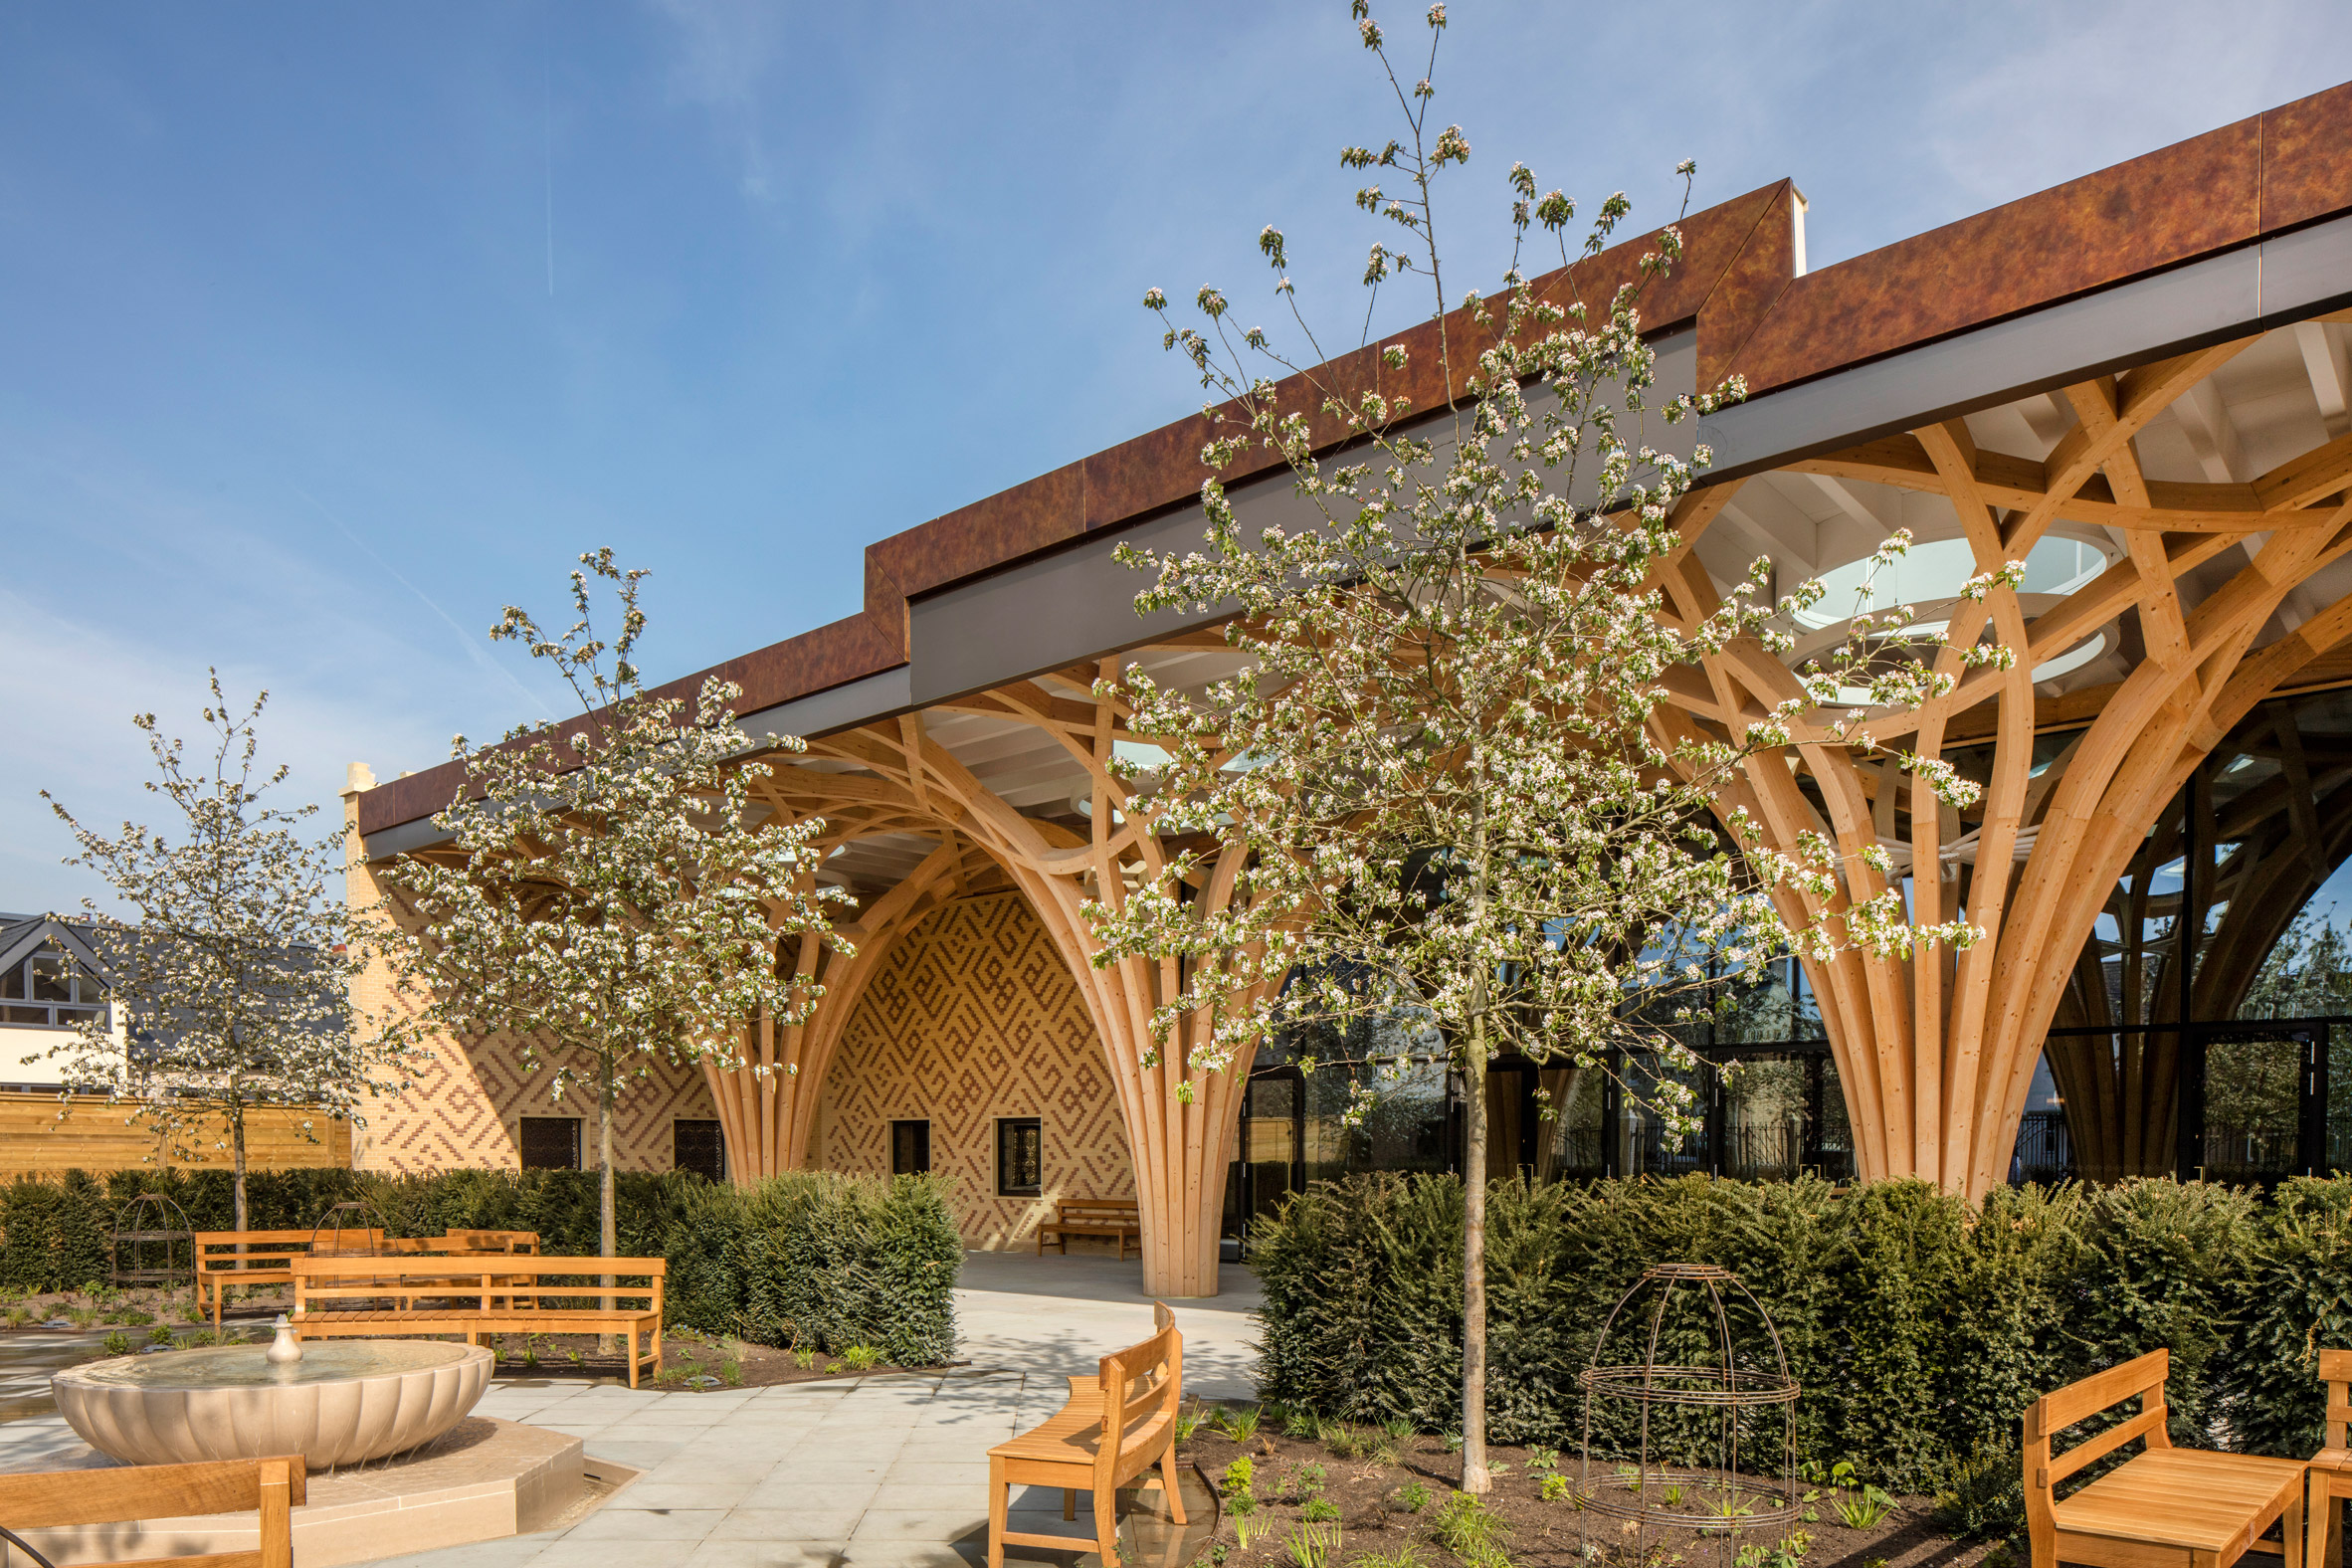 Pillars at Cambridge Central Mosque by Marks Barfield Architects